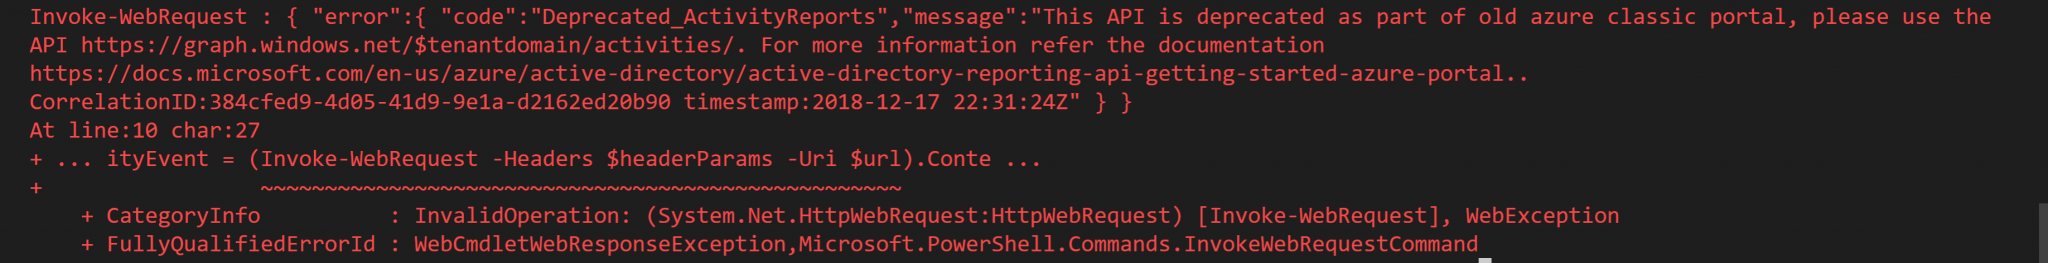 API Deprecated.PNG